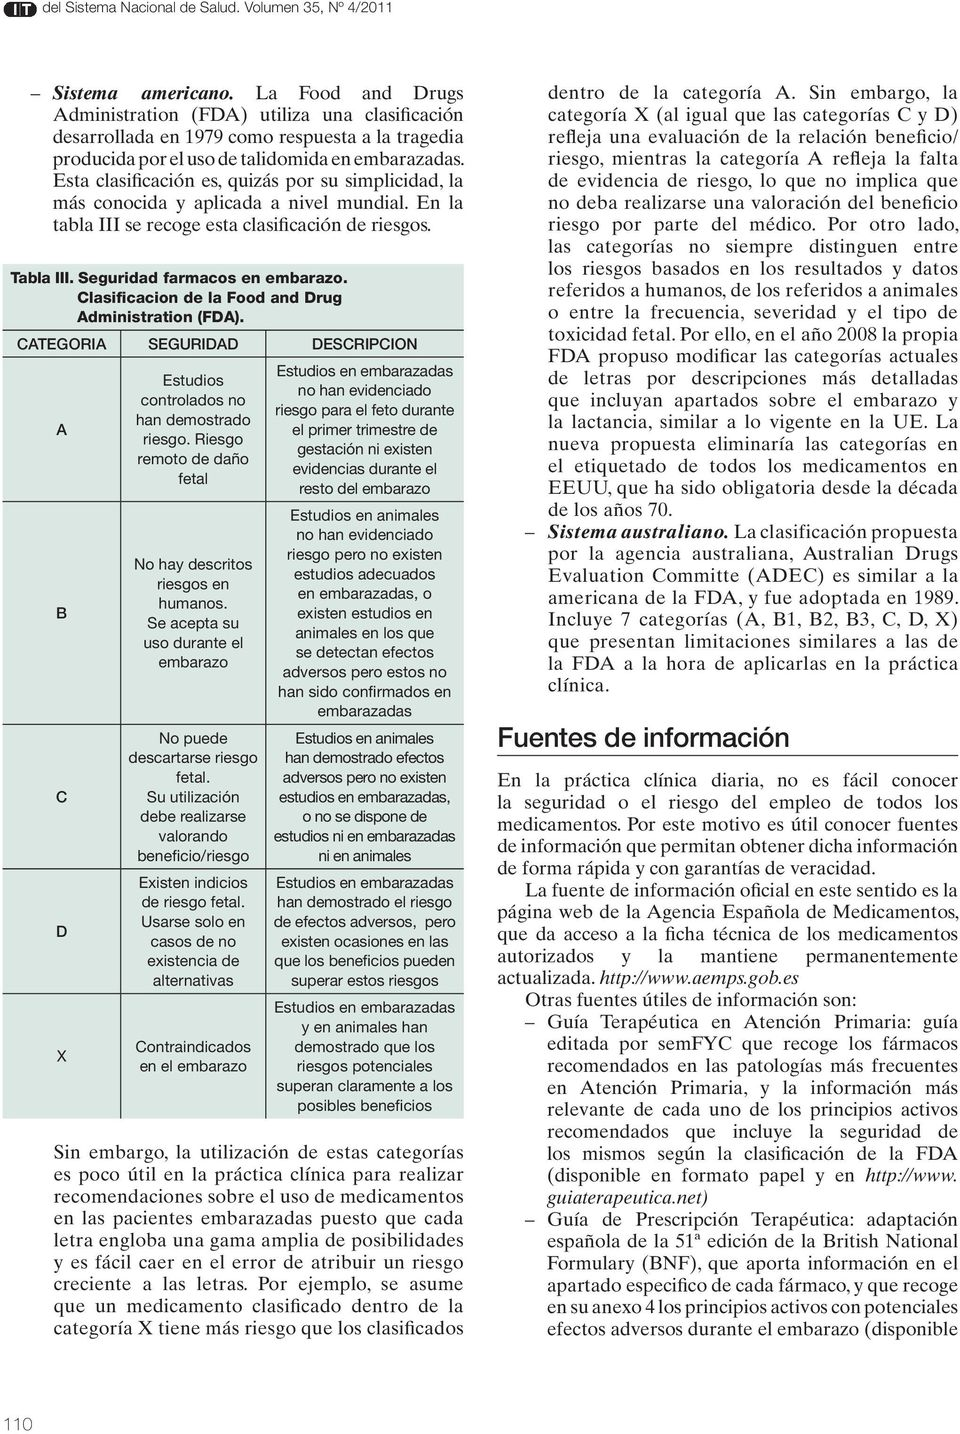 Clasificacion de la Food and Drug Administration (FDA). CATEGORIA SEGURIDAD DESCRIPCION A B C D X Estudios controlados no han demostrado riesgo.